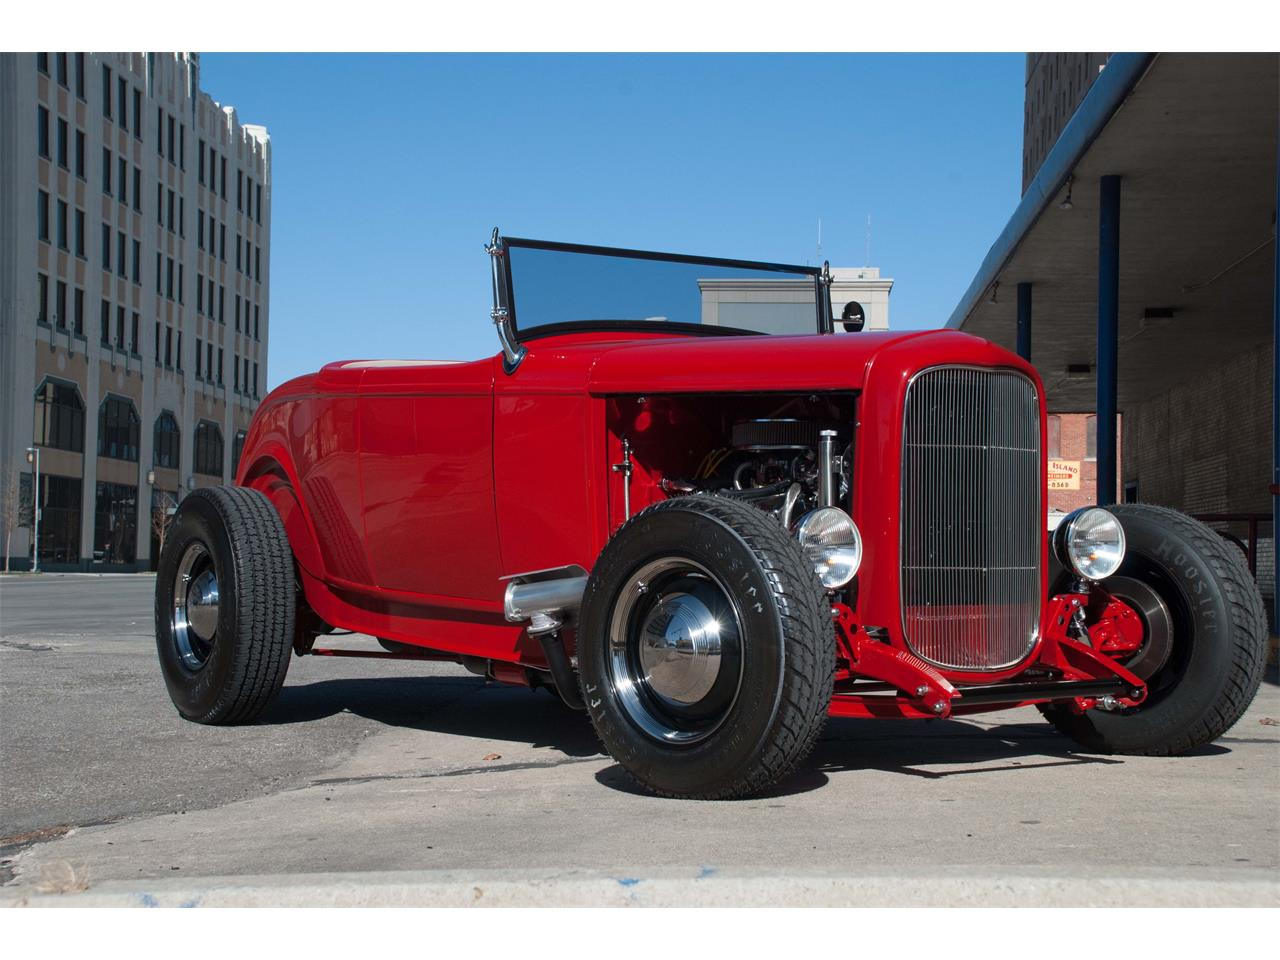 Trucks For Sale In Okc >> 1932 Ford Roadster for Sale | ClassicCars.com | CC-639294